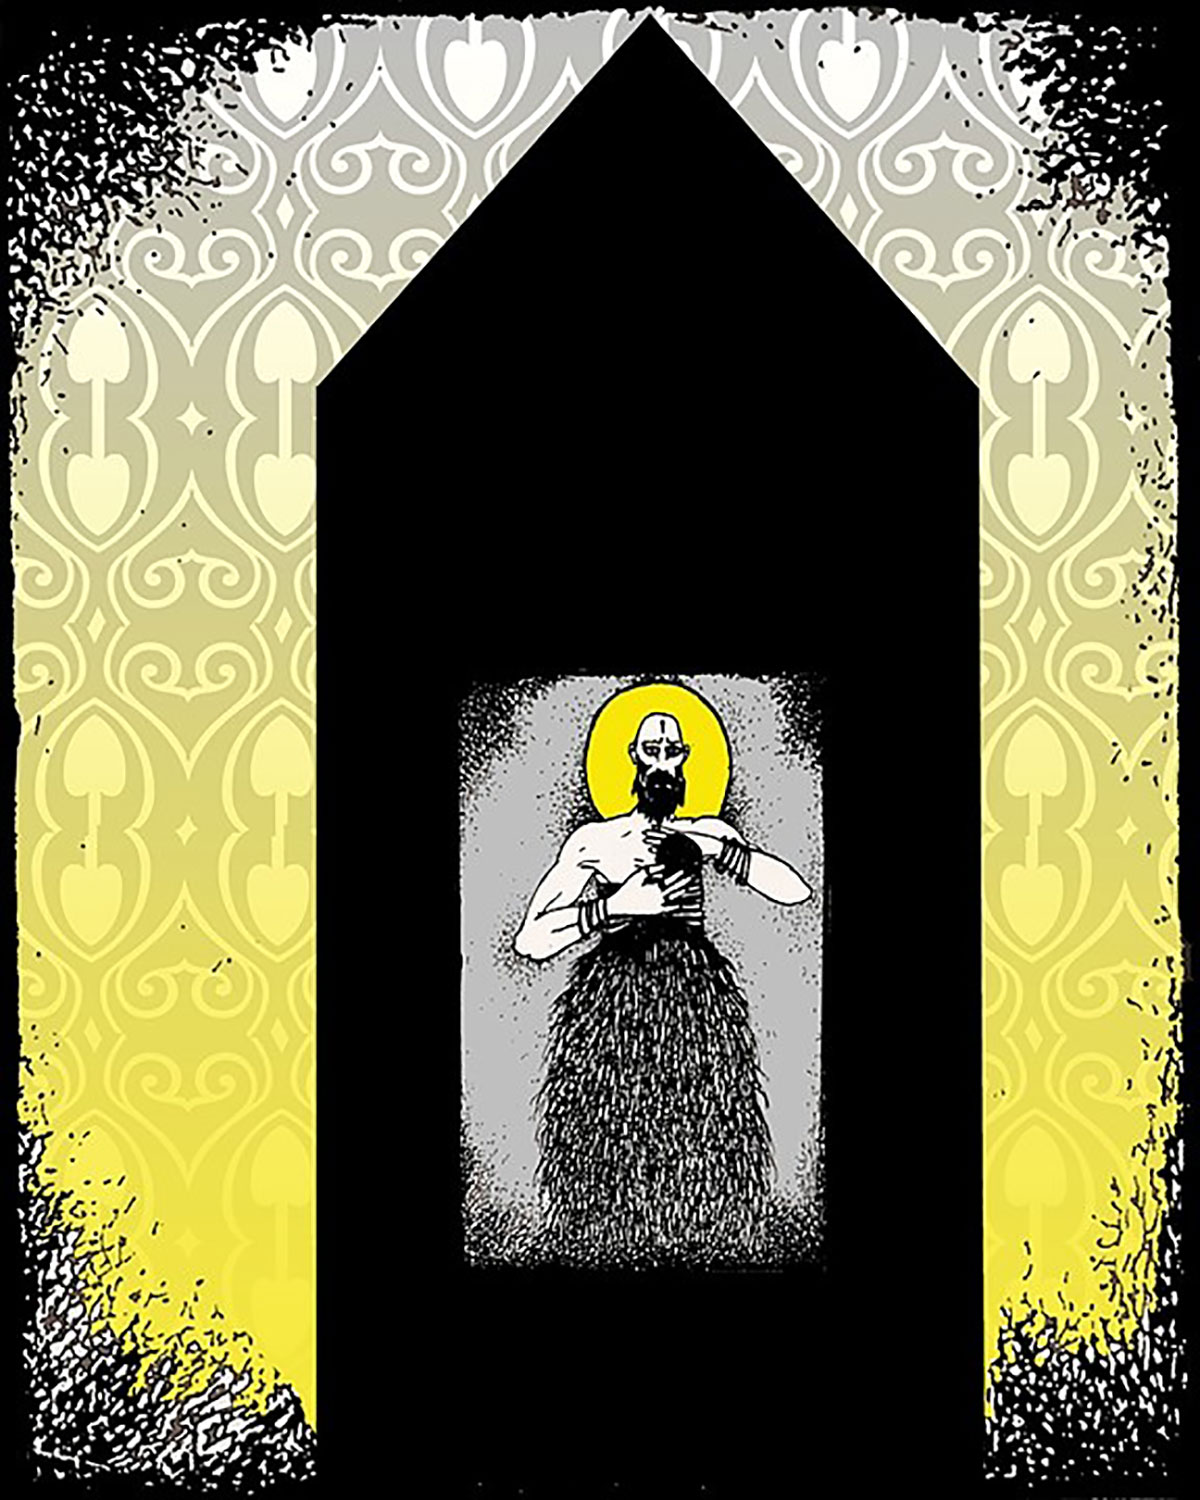 Pretense Temple - Cadmium Yellow, 2006 Serigraph and Digital Print, 17 x 15 inches.